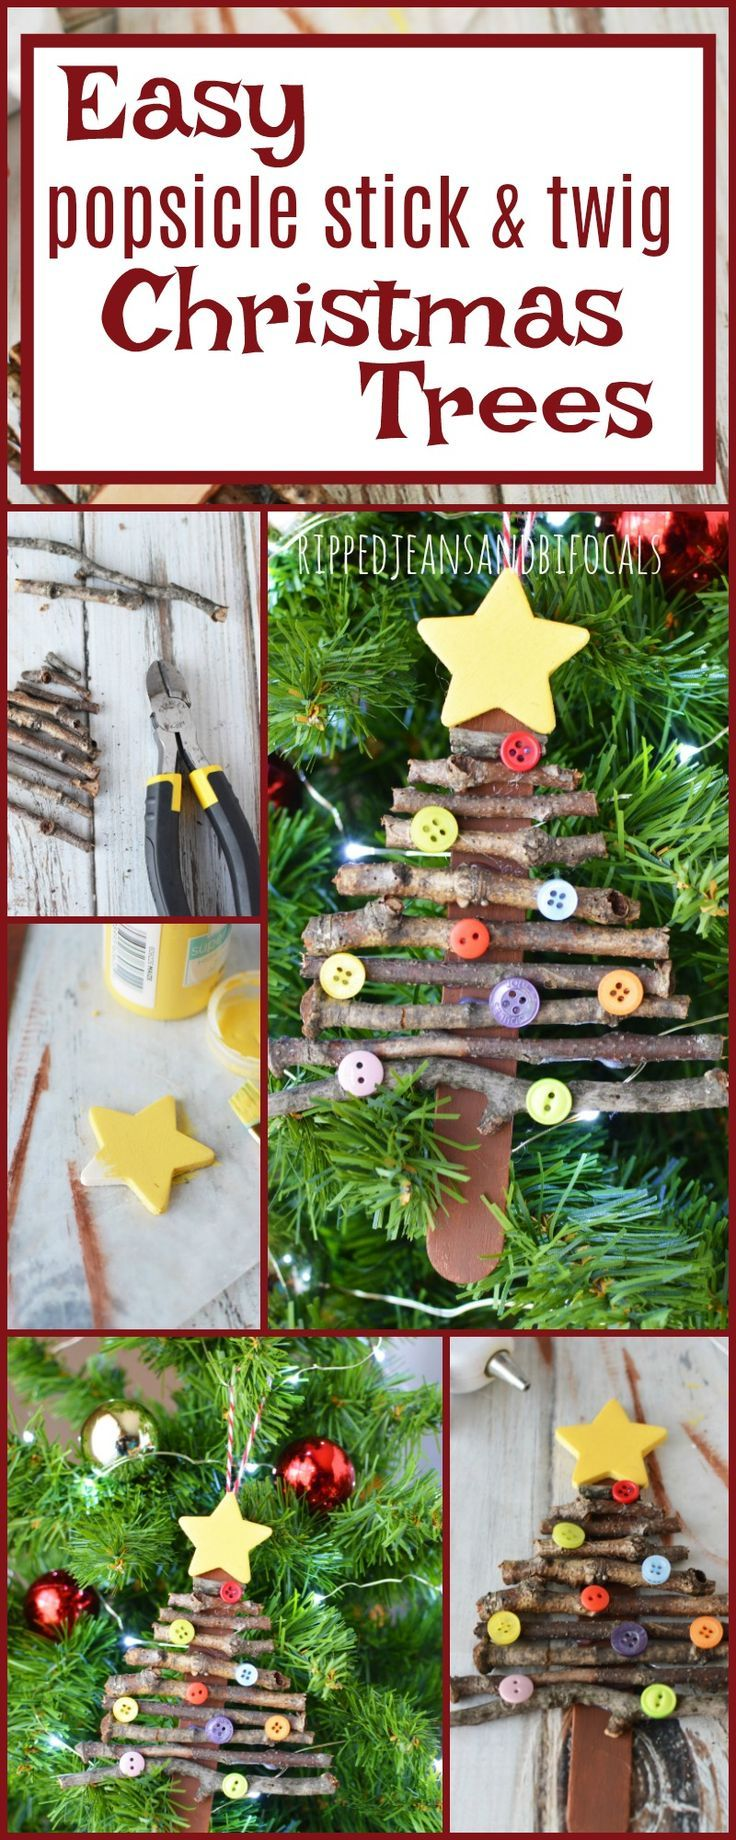 Super easy holiday craft for kids! Popsicle stick Christmas tree ornament|Ripped Jeans and Bifocals |Easy Christmas crafts|Christmas crafts for kids|girl scout troop activities|girl scout troop Christmas crafts|School Christmas craft|Homemade Christmas or